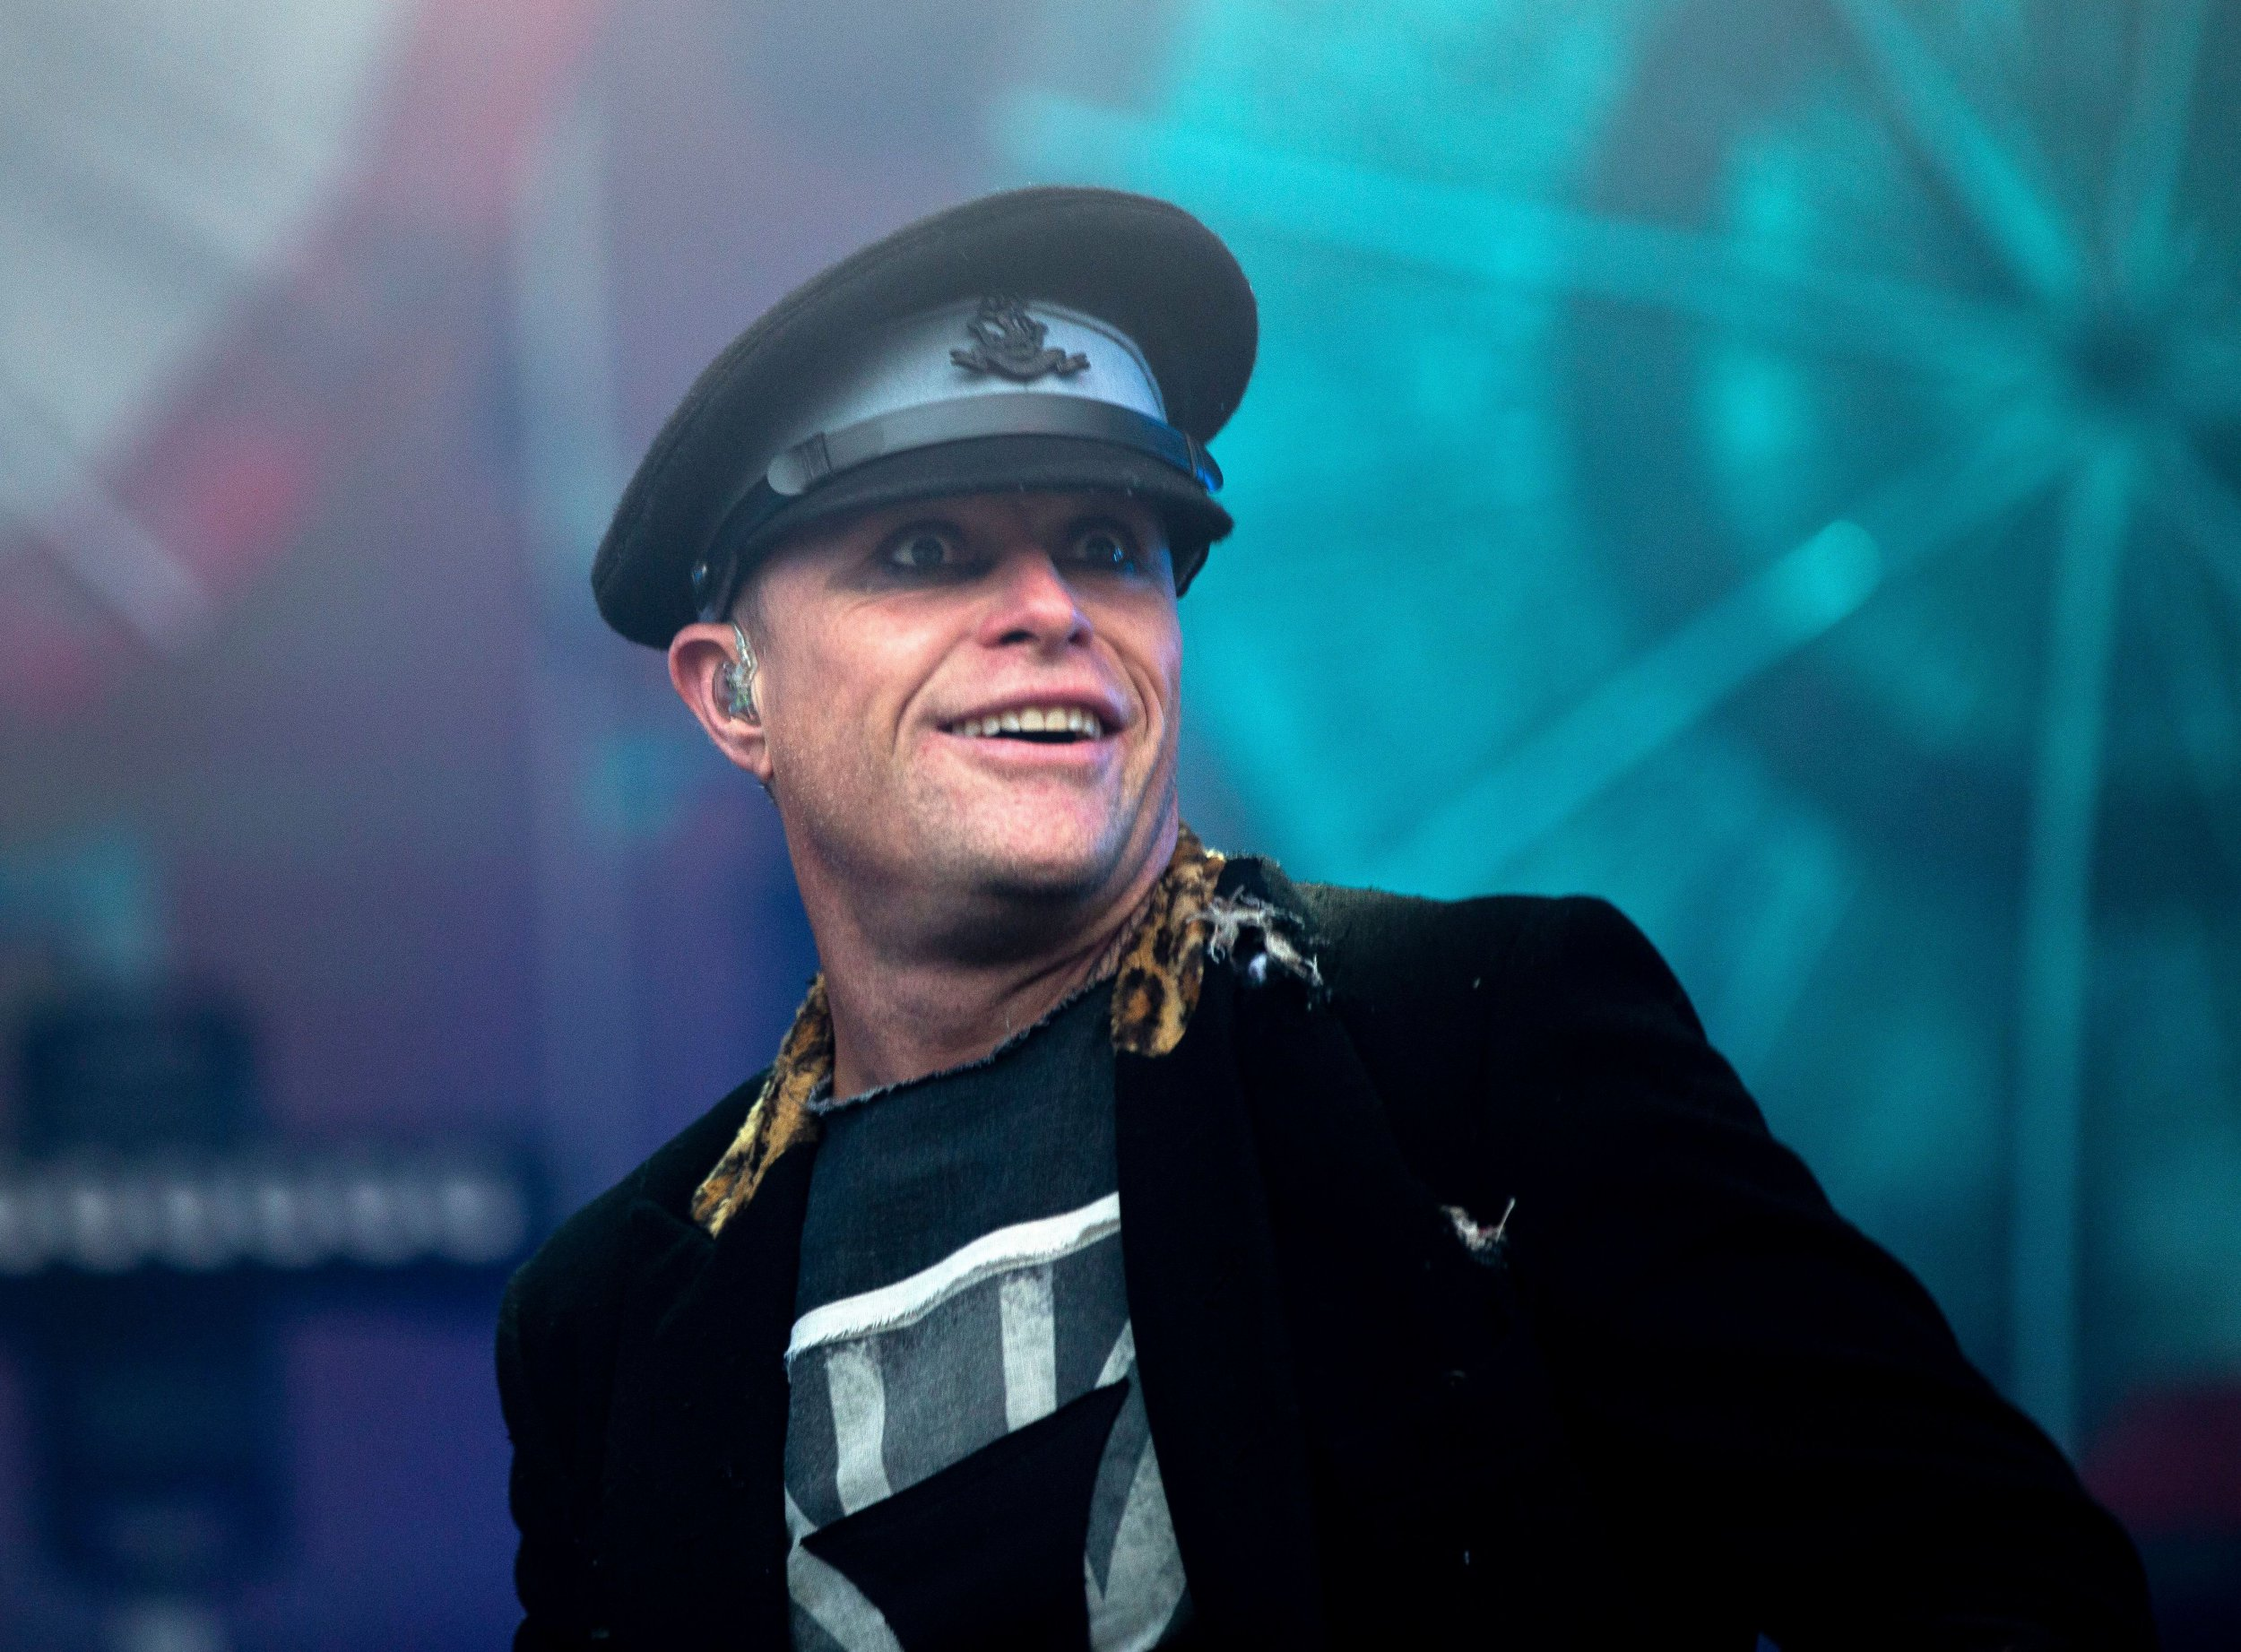 Mandatory Credit: Photo by Amy Muir/REX/Shutterstock (10138634a) Keith Flint of The Prodigy T in the Park Festival, Strathallan Castle, Perthshire, Scotland, Britain - 12 Jul 2015